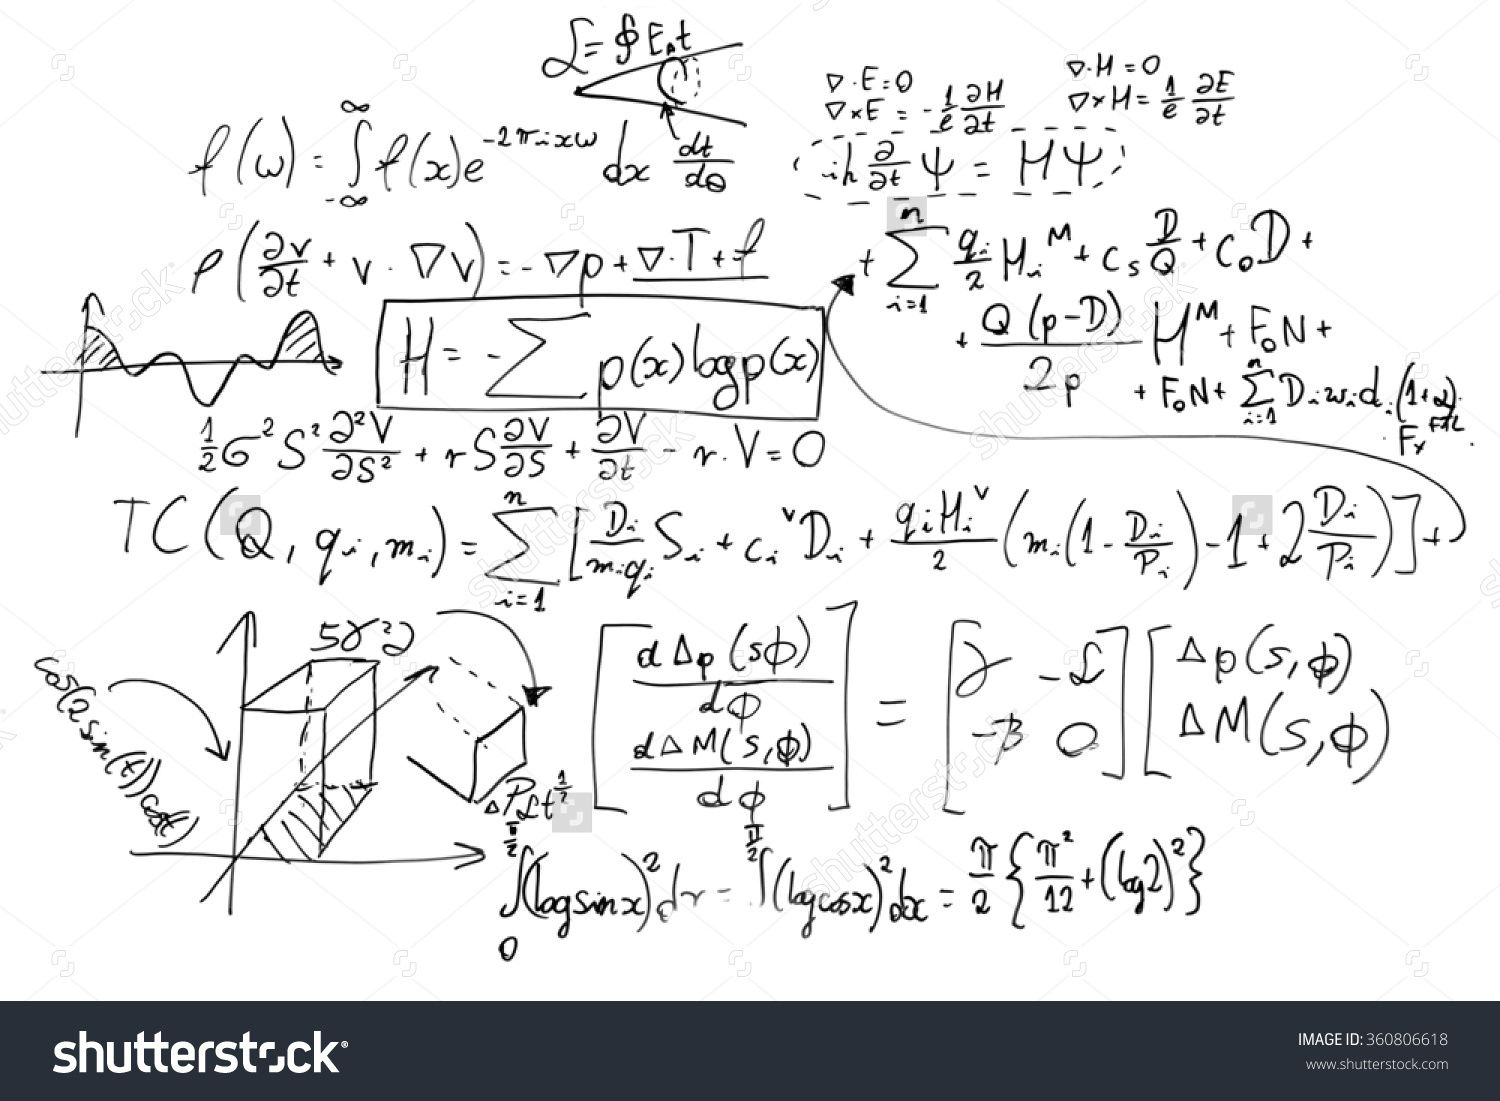 Stock photo complex math formulas on whiteboard mathematics and complex math formulas on whiteboard mathematics and science with economics concept real equations symbols handwritten by a professional buycottarizona Image collections